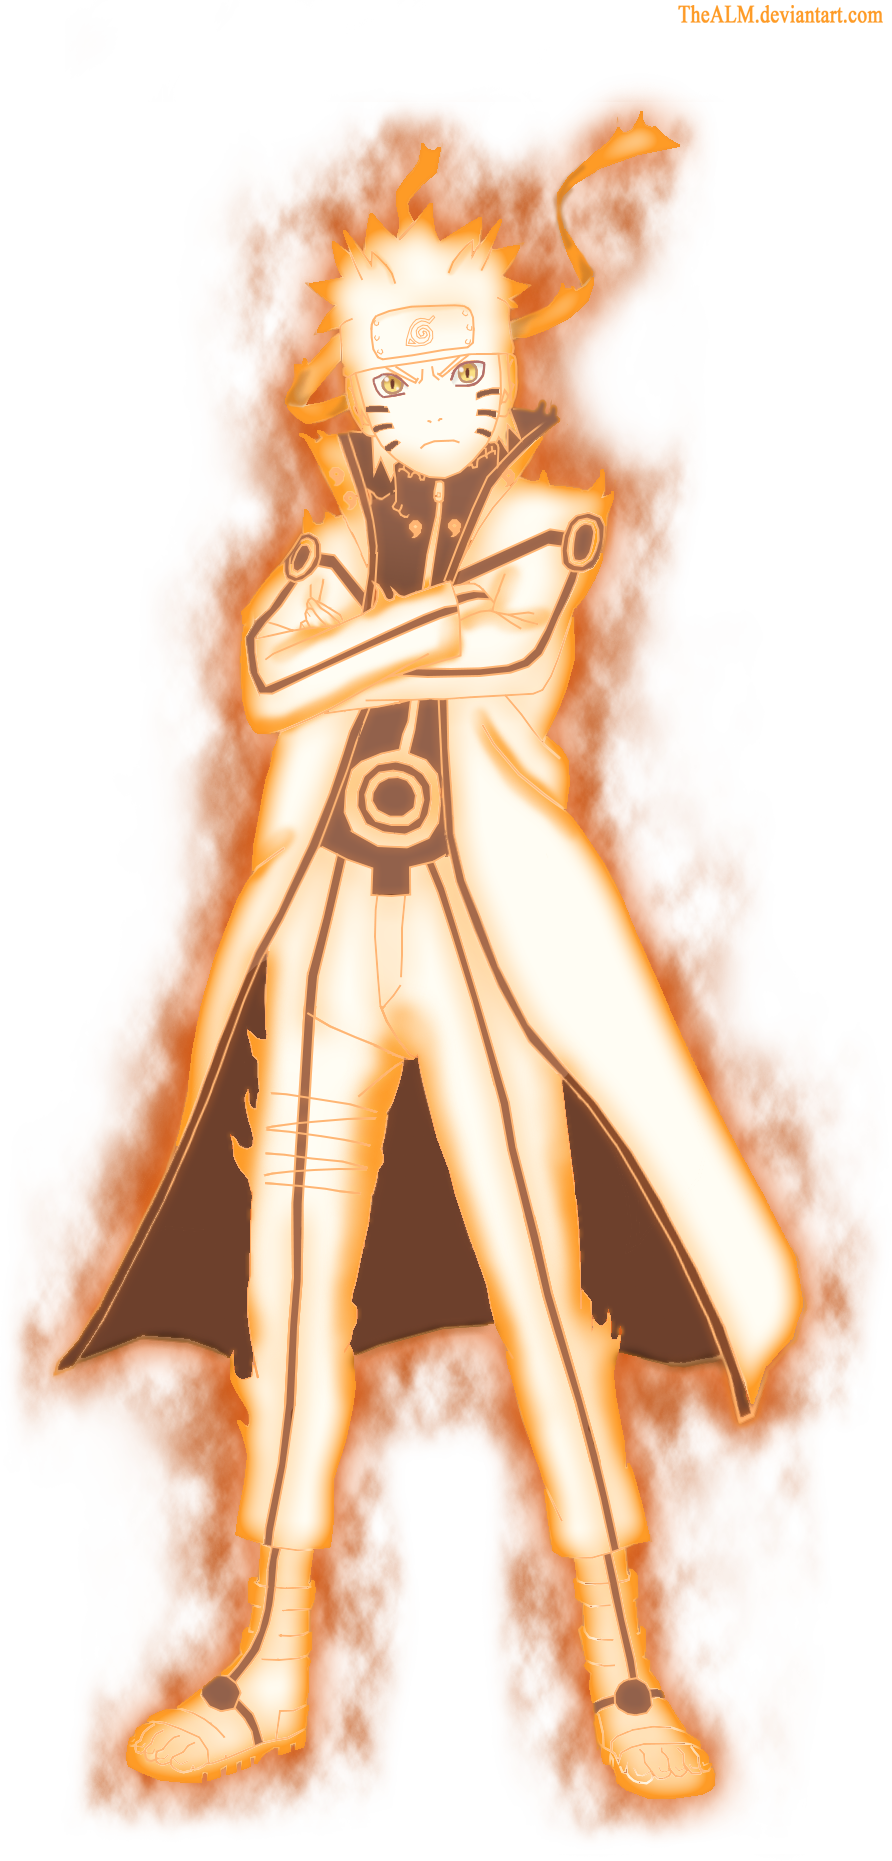 Naruto Nine Tails Chakra Mode by Dattexx on DeviantArt